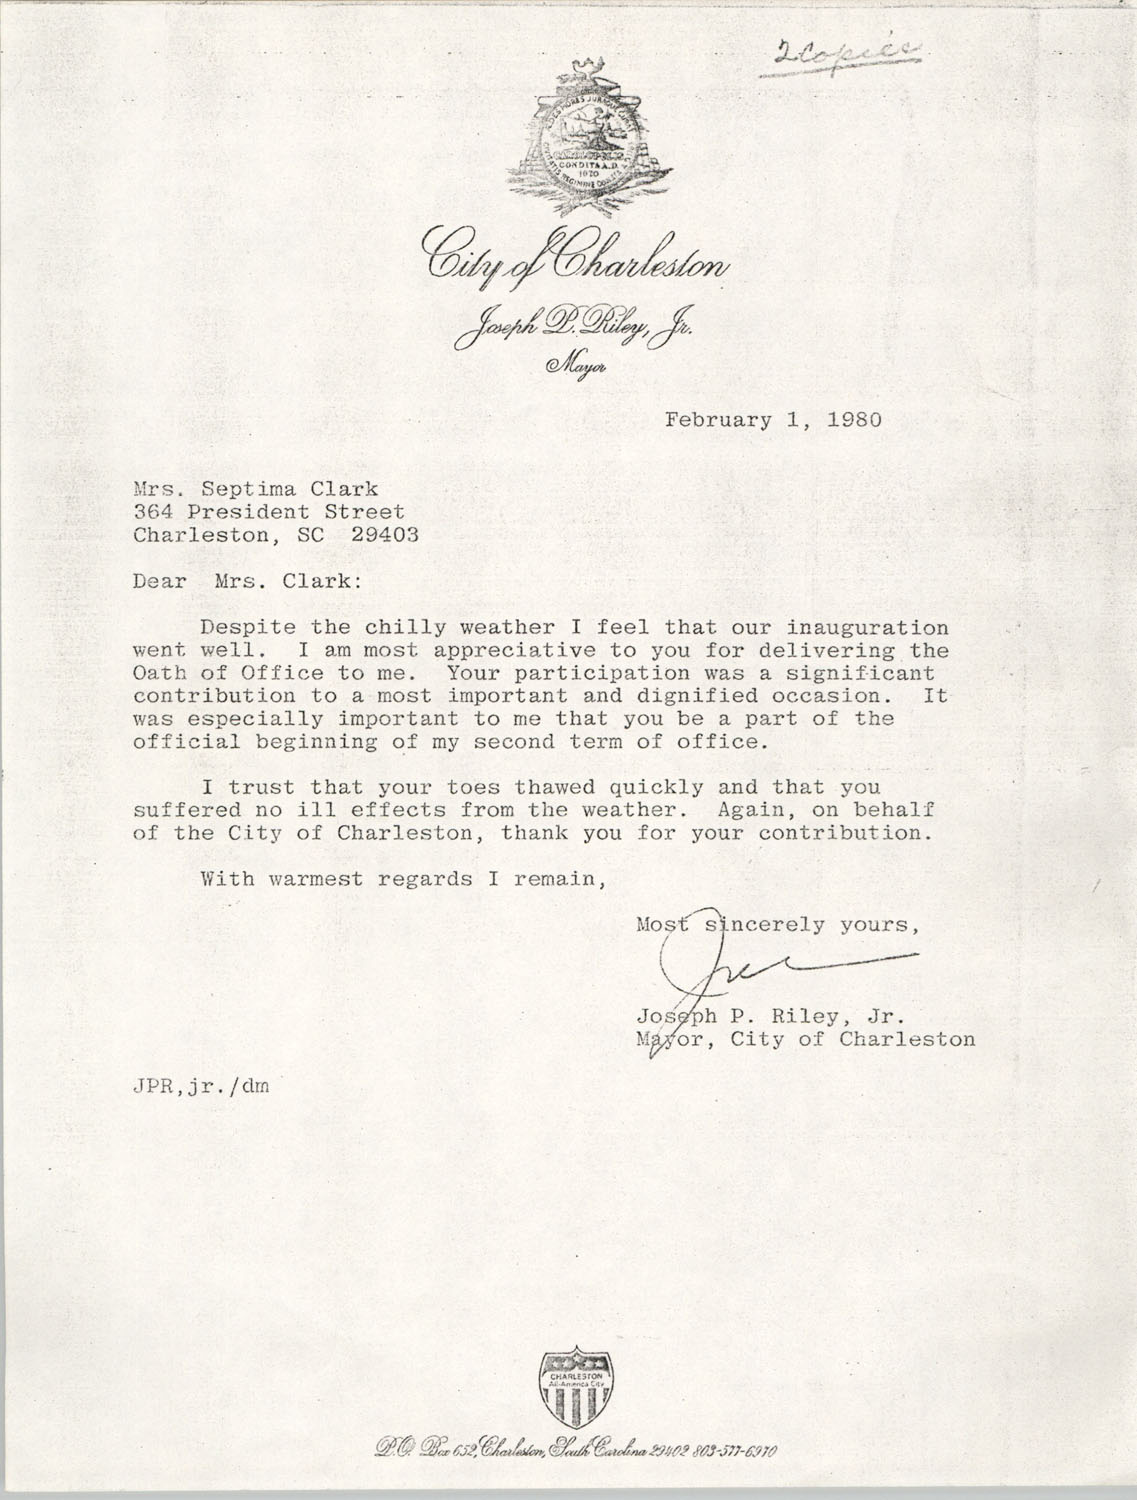 Letter from Joseph P. Riley, Jr. to Septima Clark, February 1, 1980